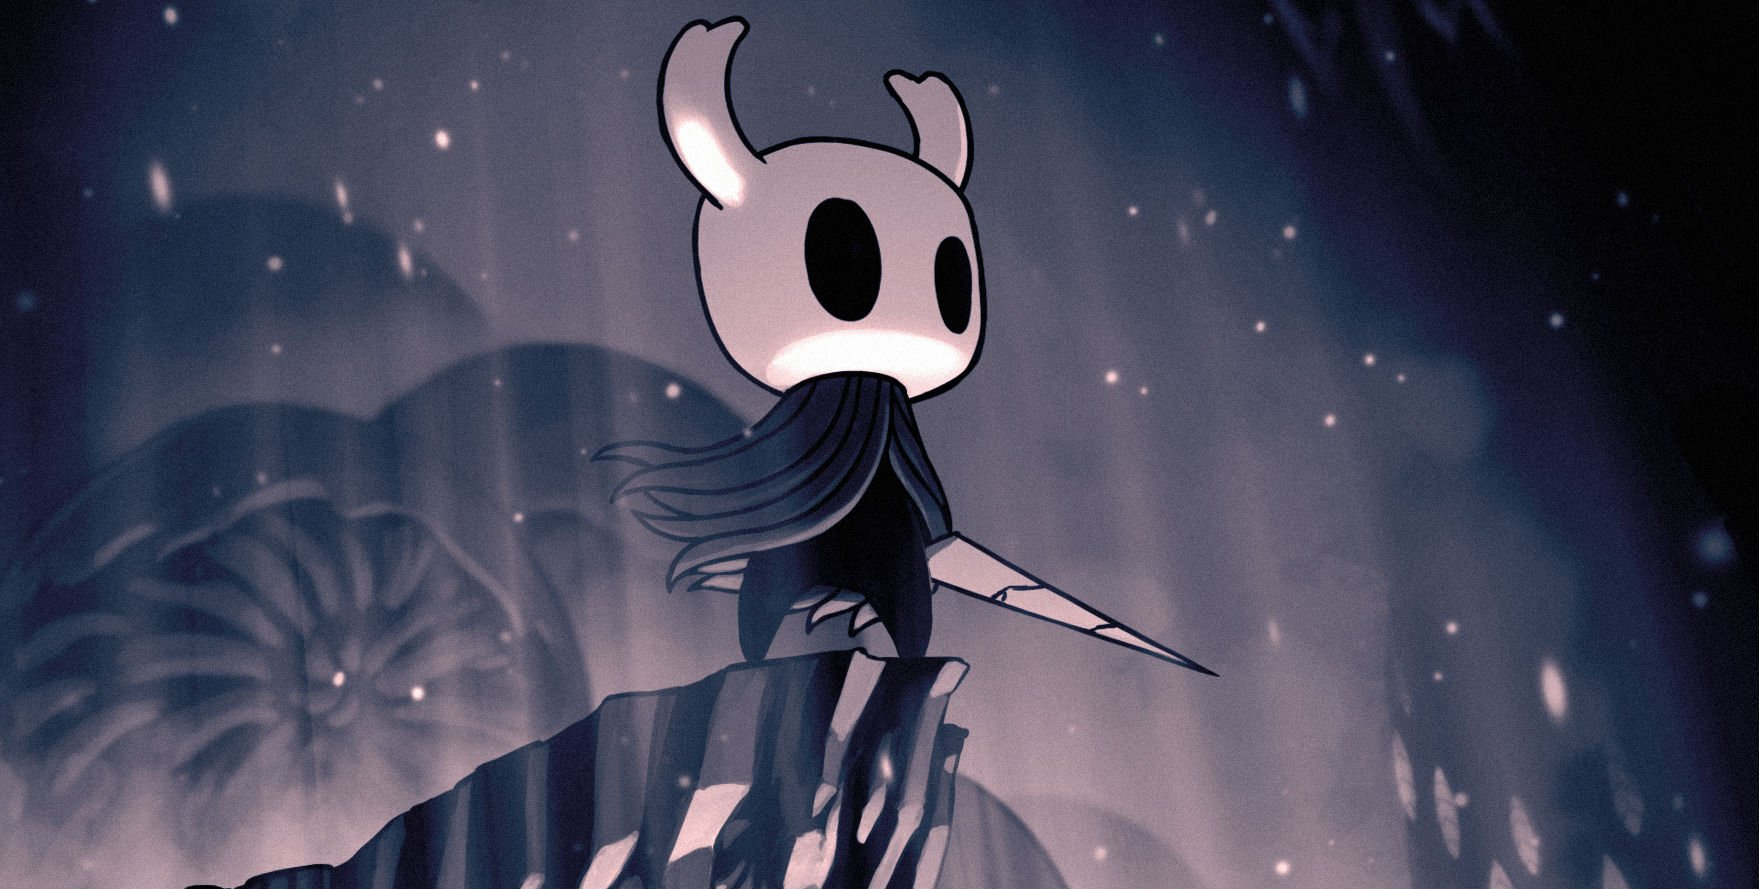 Hollow Knight's new expansion is getting a name change screenshot